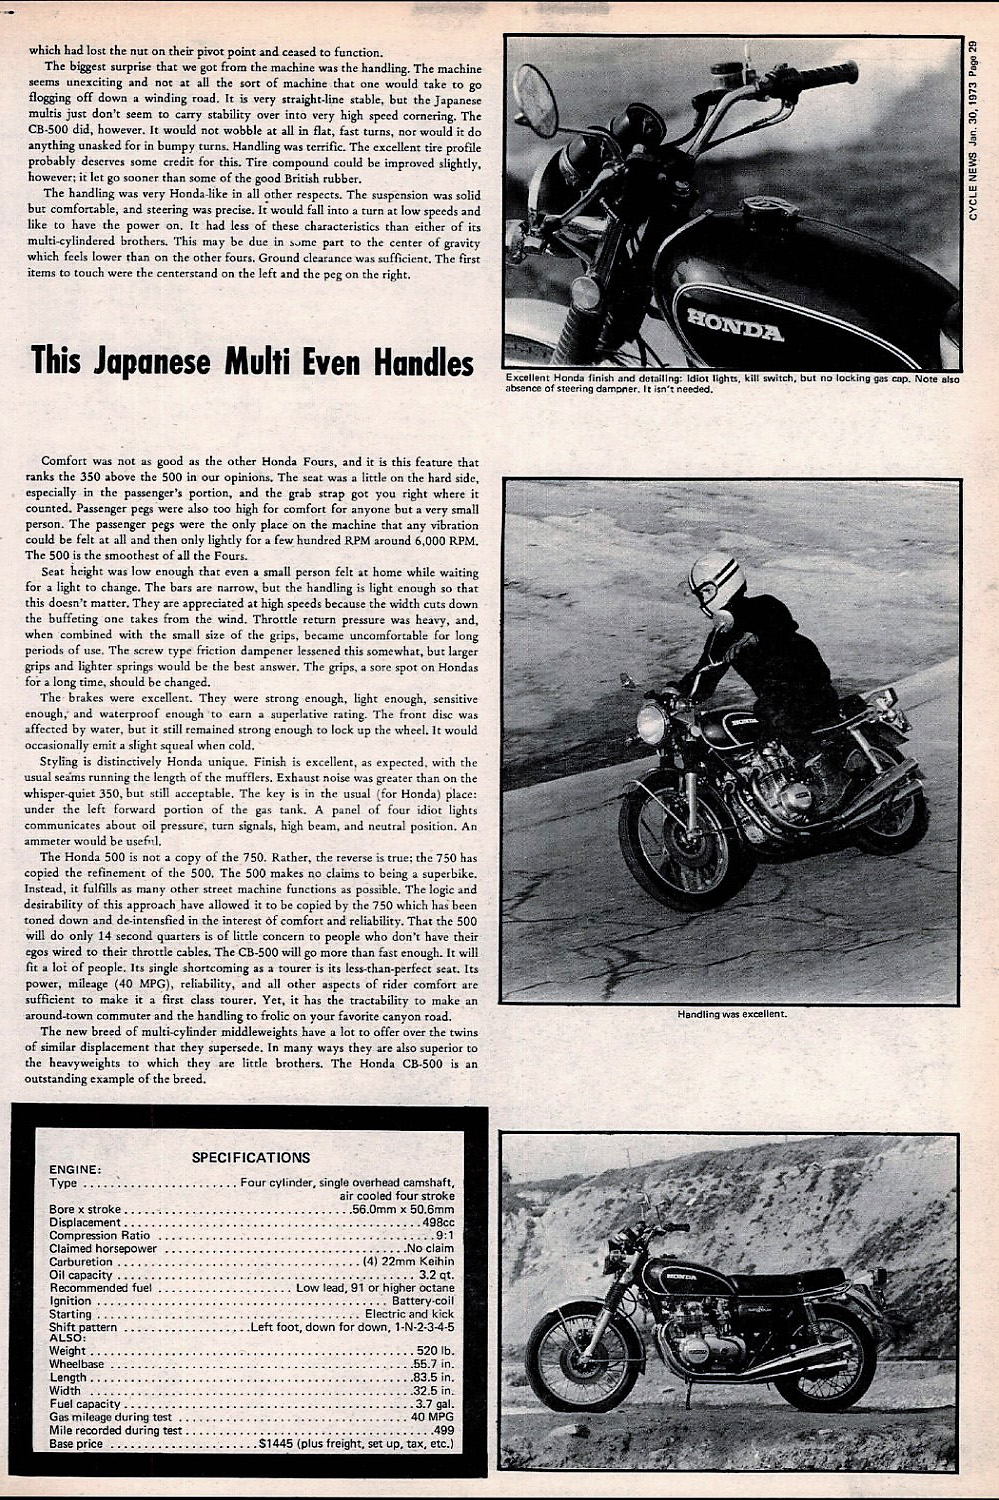 1972 Honda CB500 road test 02.jpg